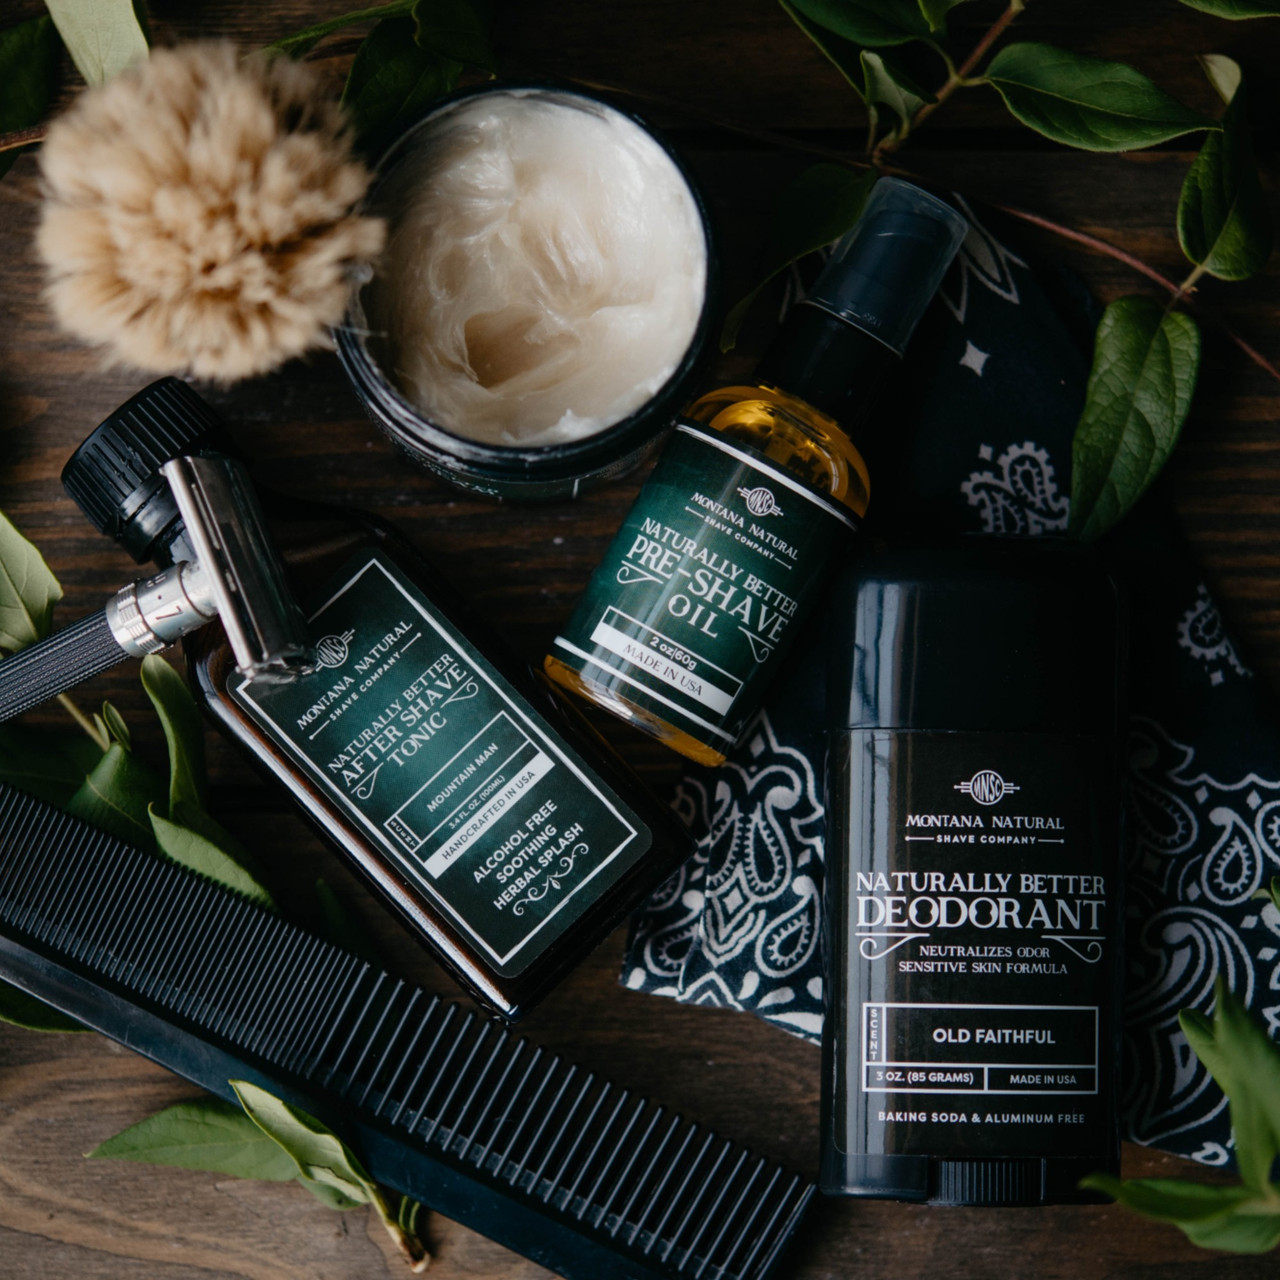 Hydrating Toning Mist - Sandalwood & Rose Water Hydrosol, Montana Natural Shave Company